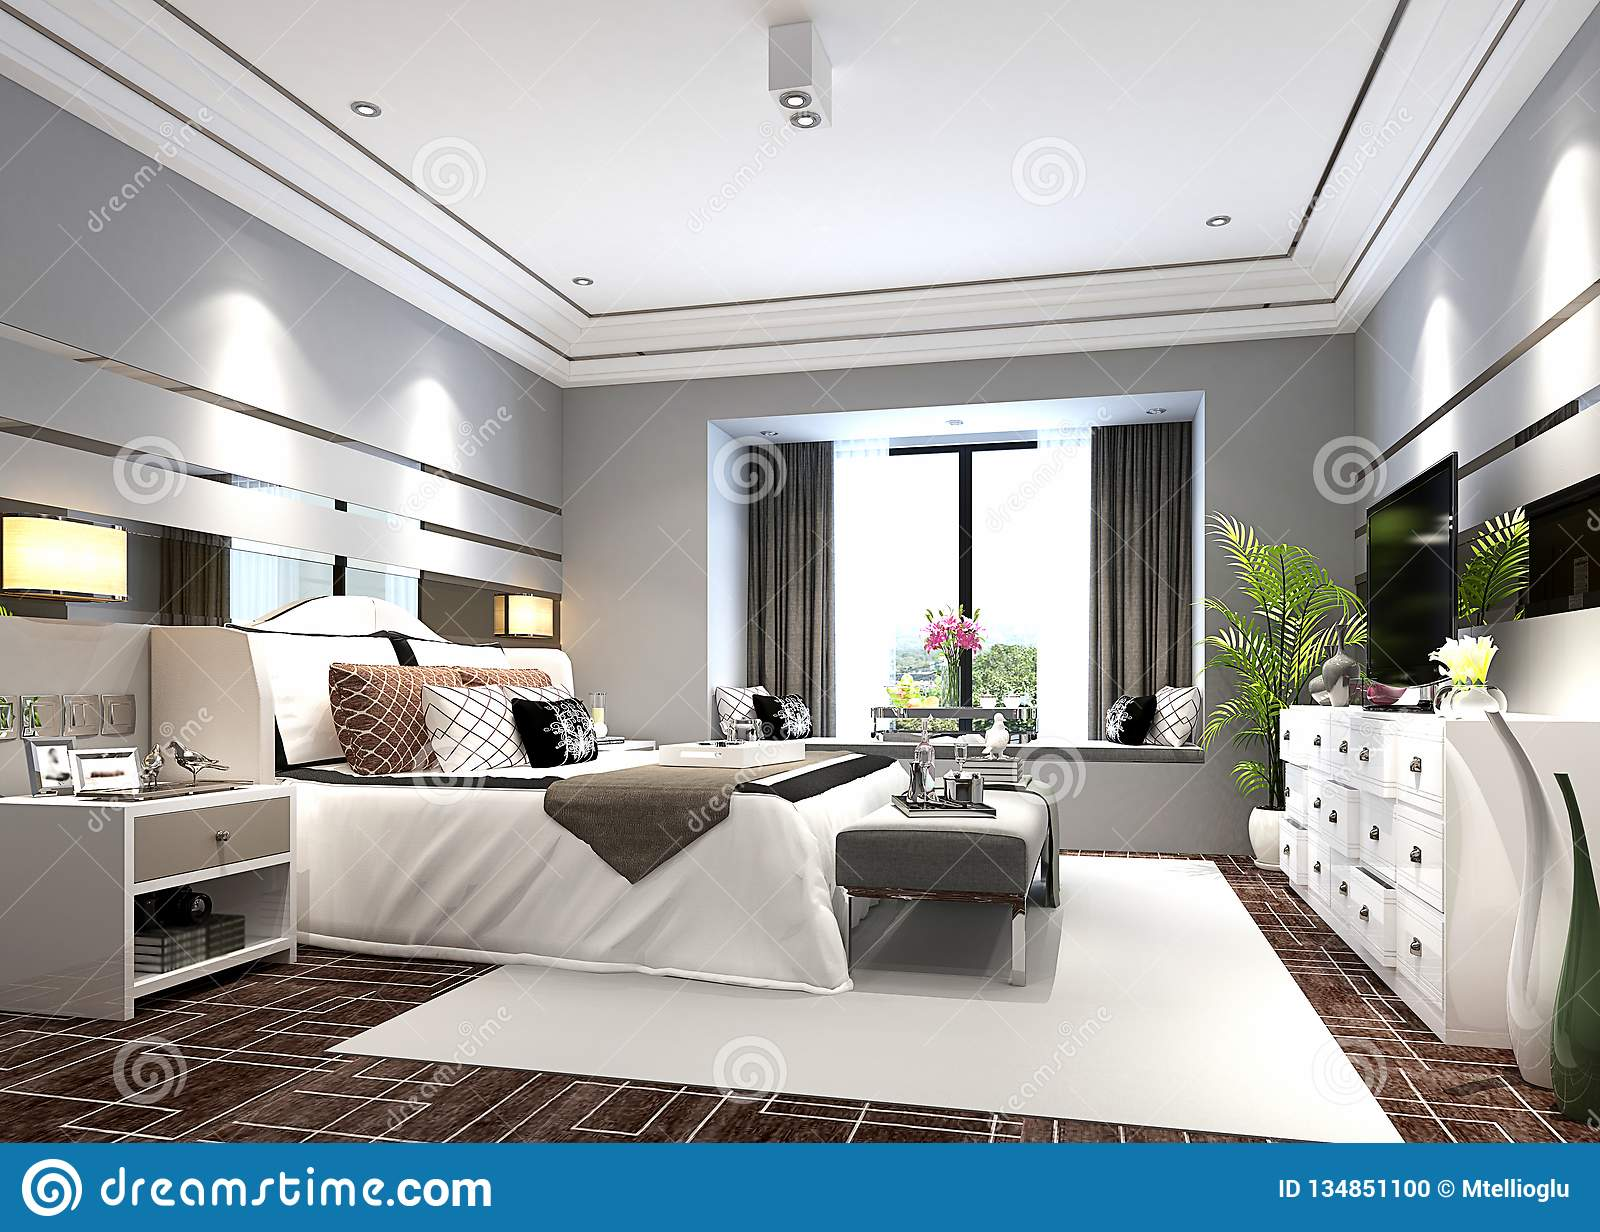 3d Render Of Modern Bedroom Stock Photo Image Of Interior